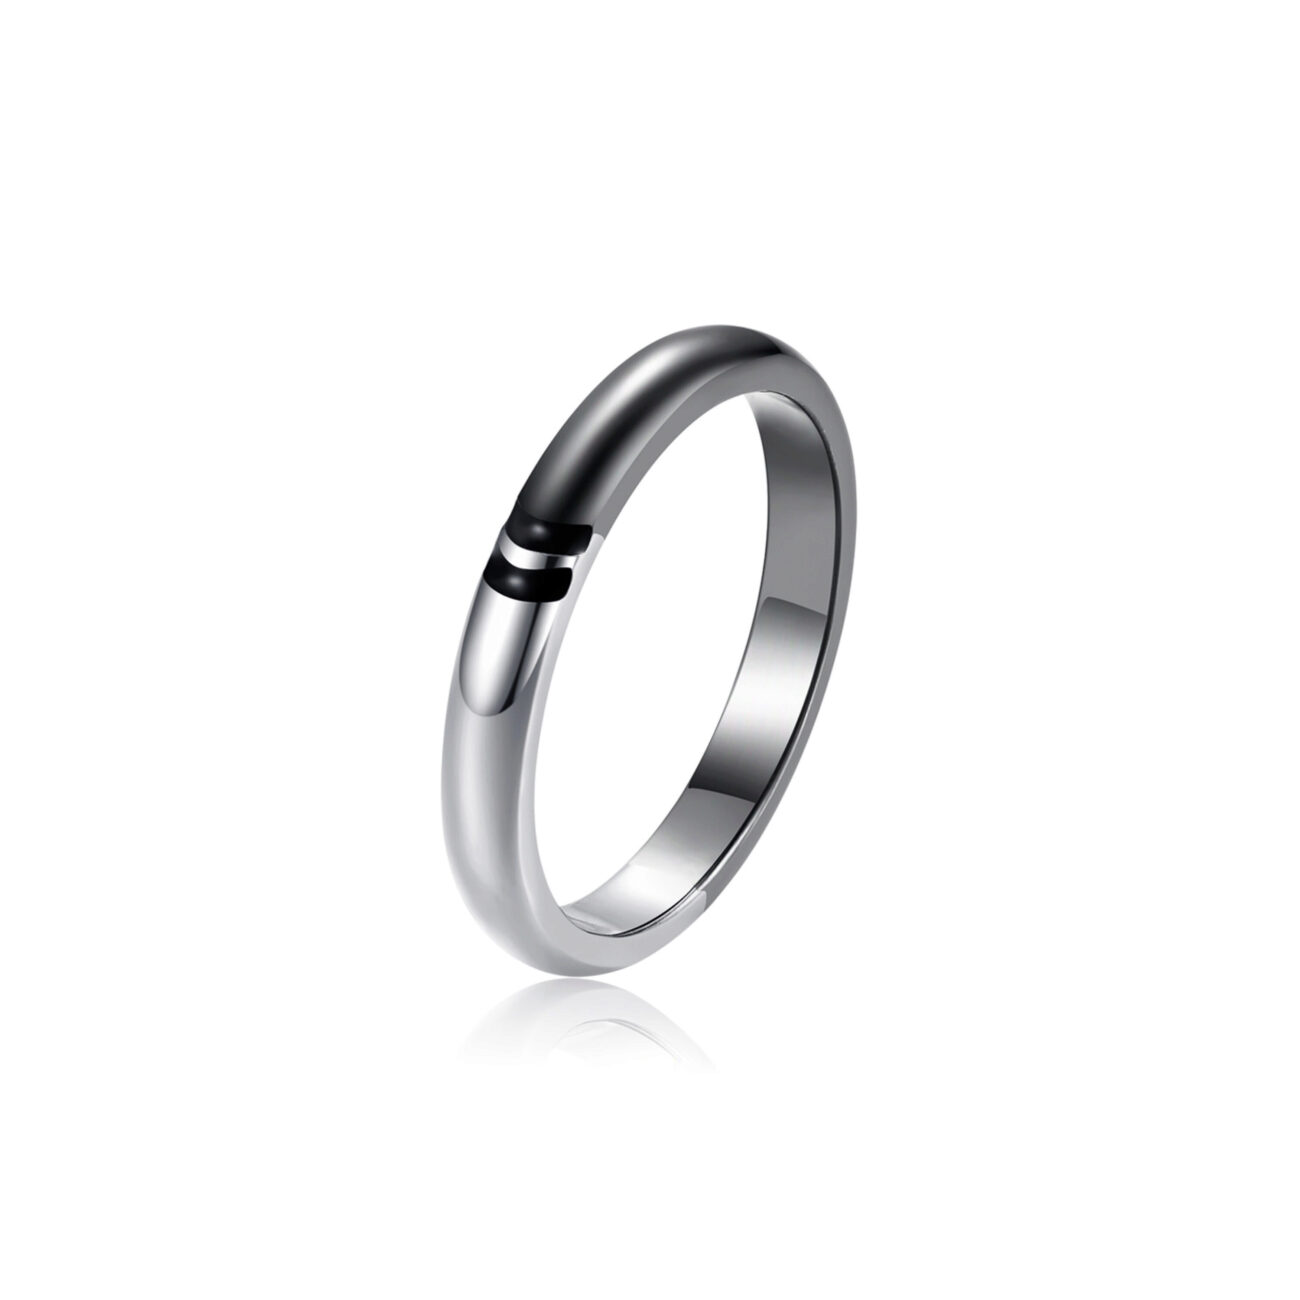 Slim ring in 316L stainless steel, gray gun pvd, shiny steel finishes and enamel details in deep black color.